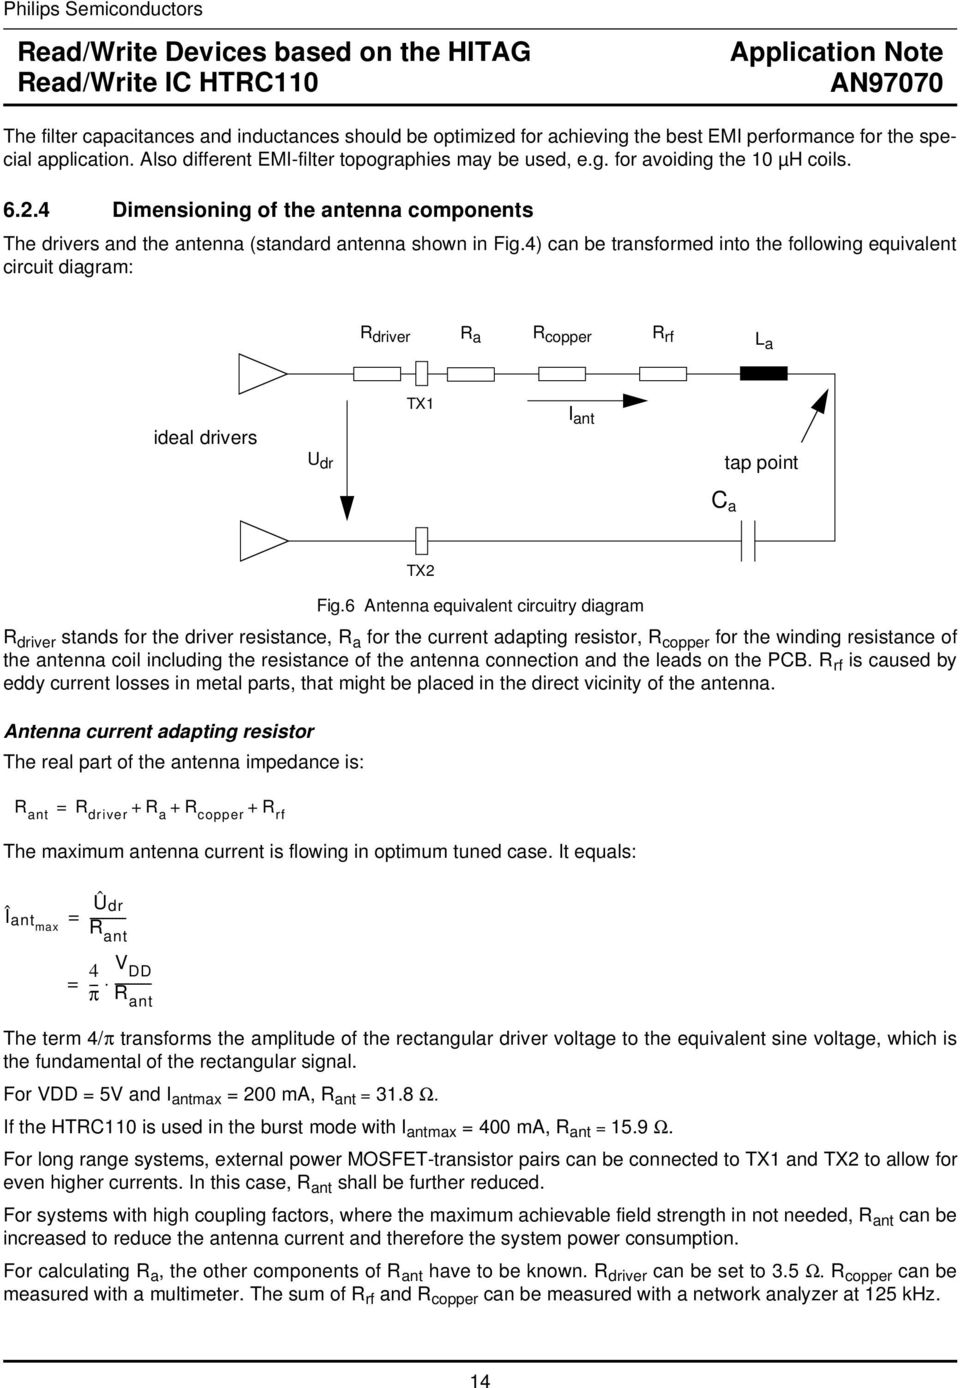 Read Write Devices Based On The Hitag Ic Htrc110 Pdf Ekg Fm Demodulator Circuit Diagram Tradeoficcom 4 Can Be Transformed Into Following Equivalent R Driver A